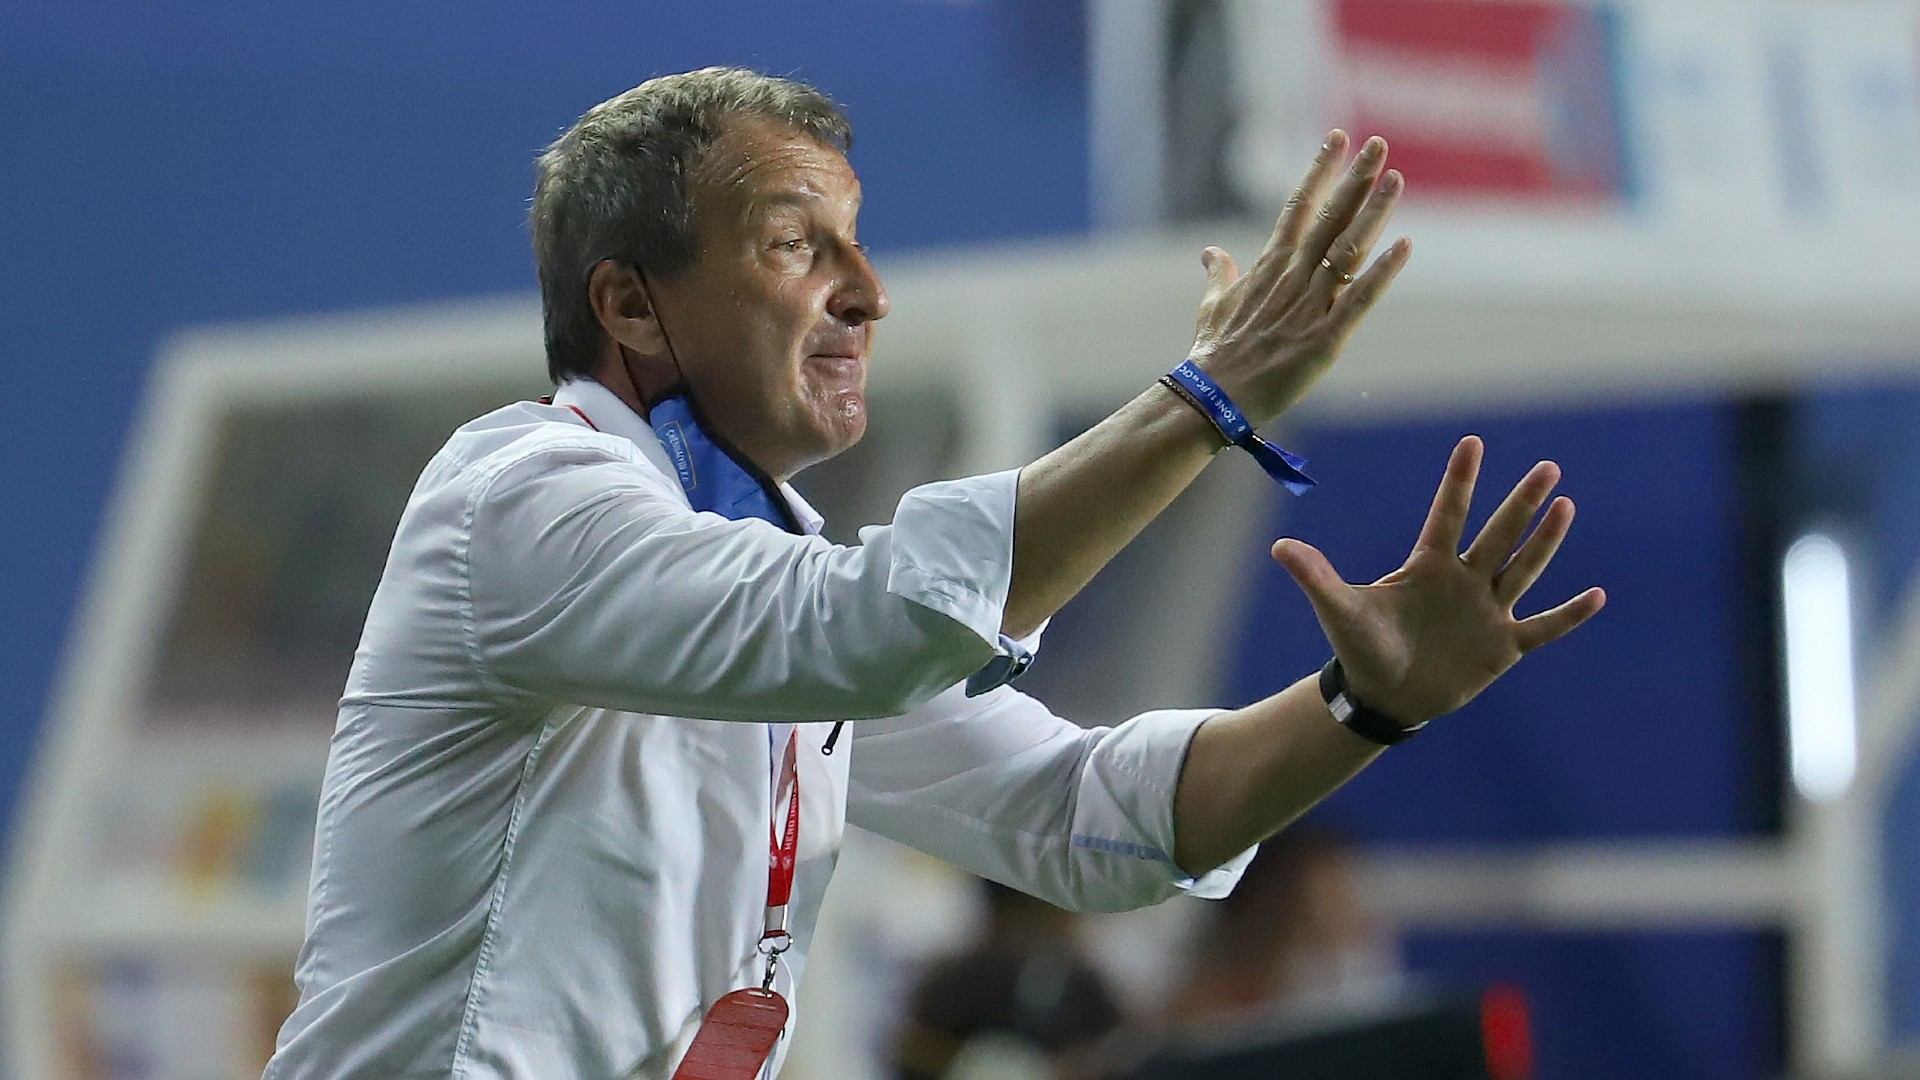 ISL 2020-21: Csaba Laszlo – Chennaiyin FC must be clinical against 'physical' Bengaluru FC